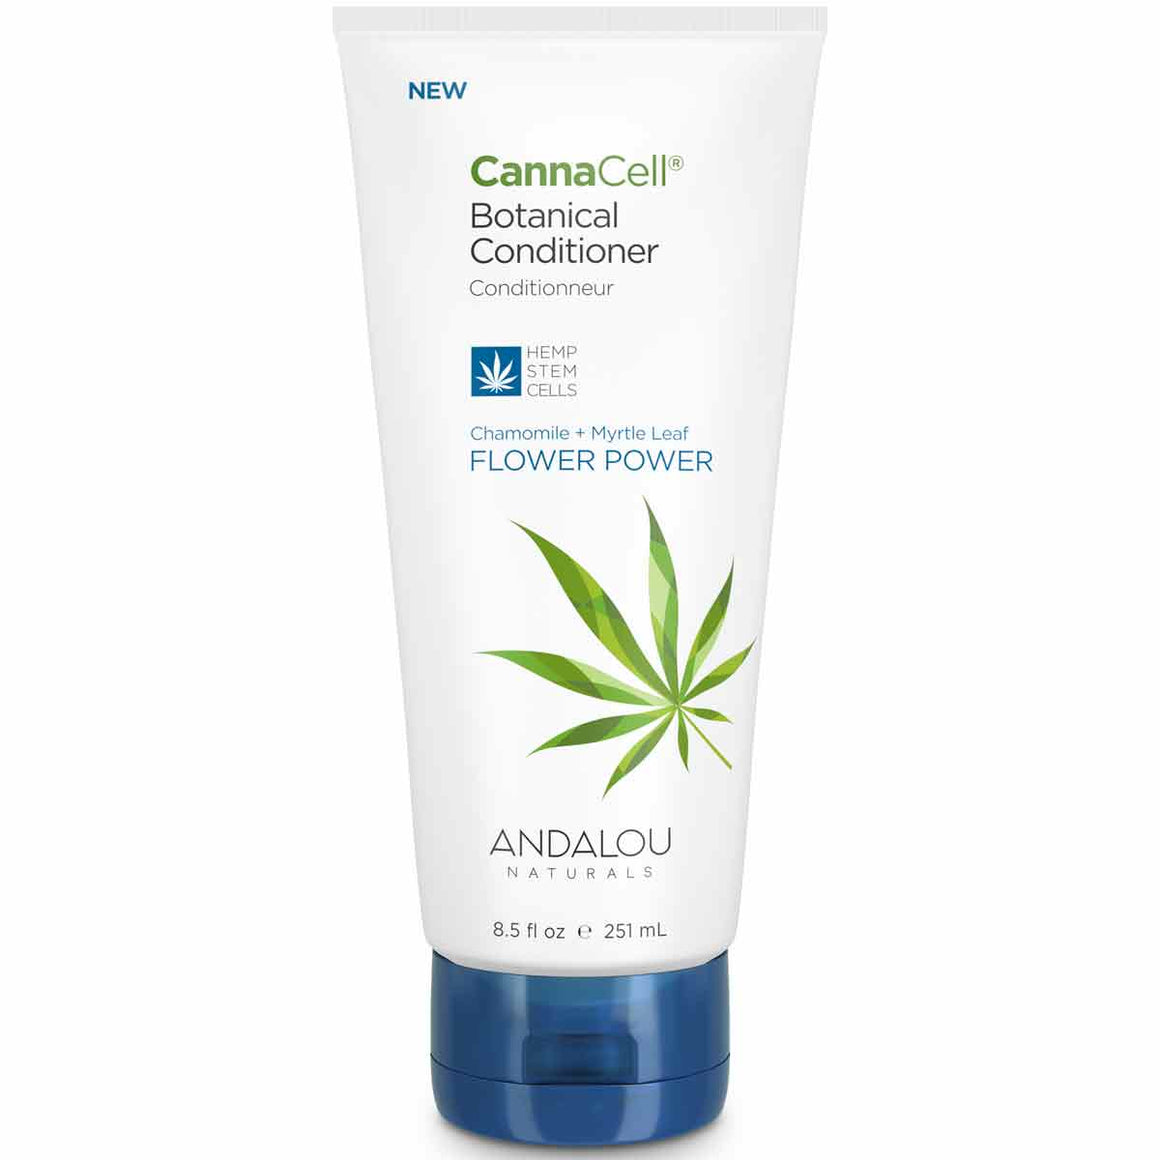 CannaCell® Botanical Conditioner - FLOWER POWER